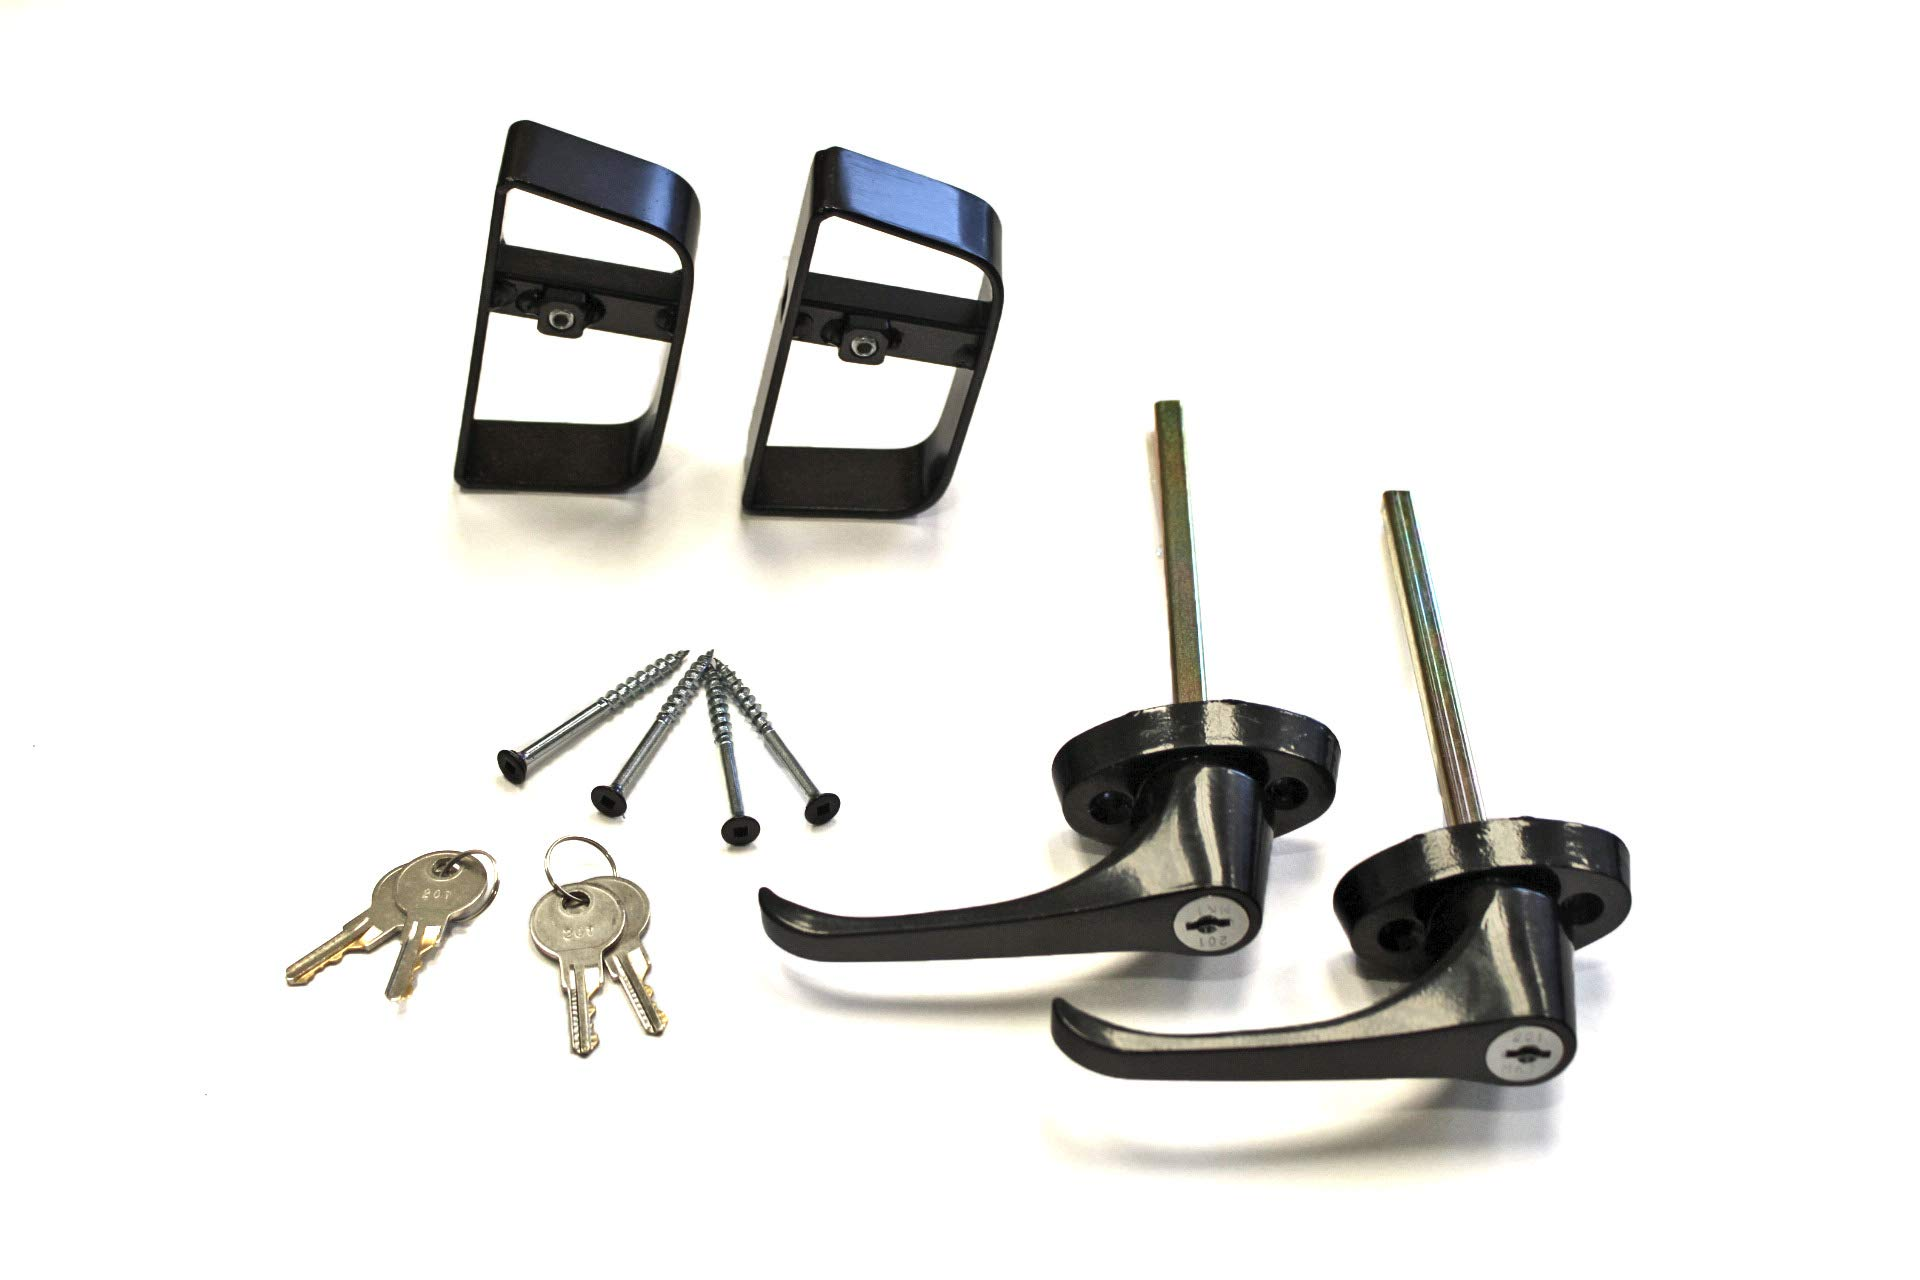 Doors & Door Hardware 5-1/2'' Black L Handle Door Lock Set - For shed, gate, playhouse - 2 KEYED ALIKE